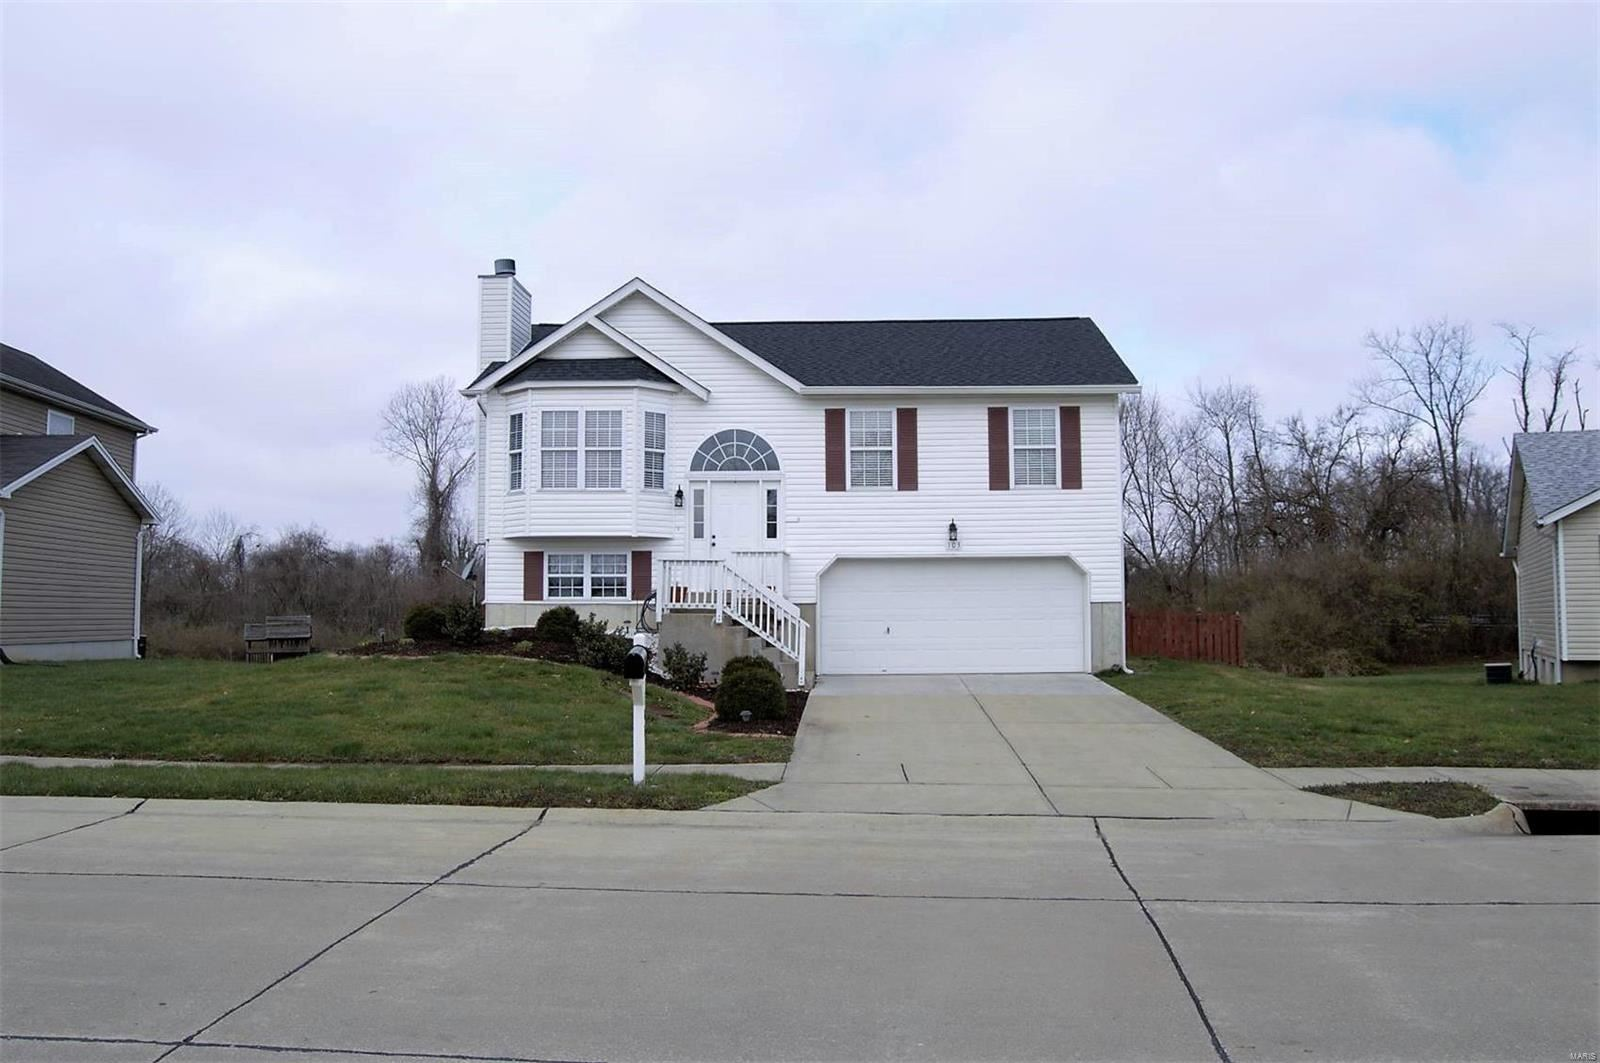 103 Pine Hollow Ln, Collinsville, IL 62234 - MLS#: 20017651